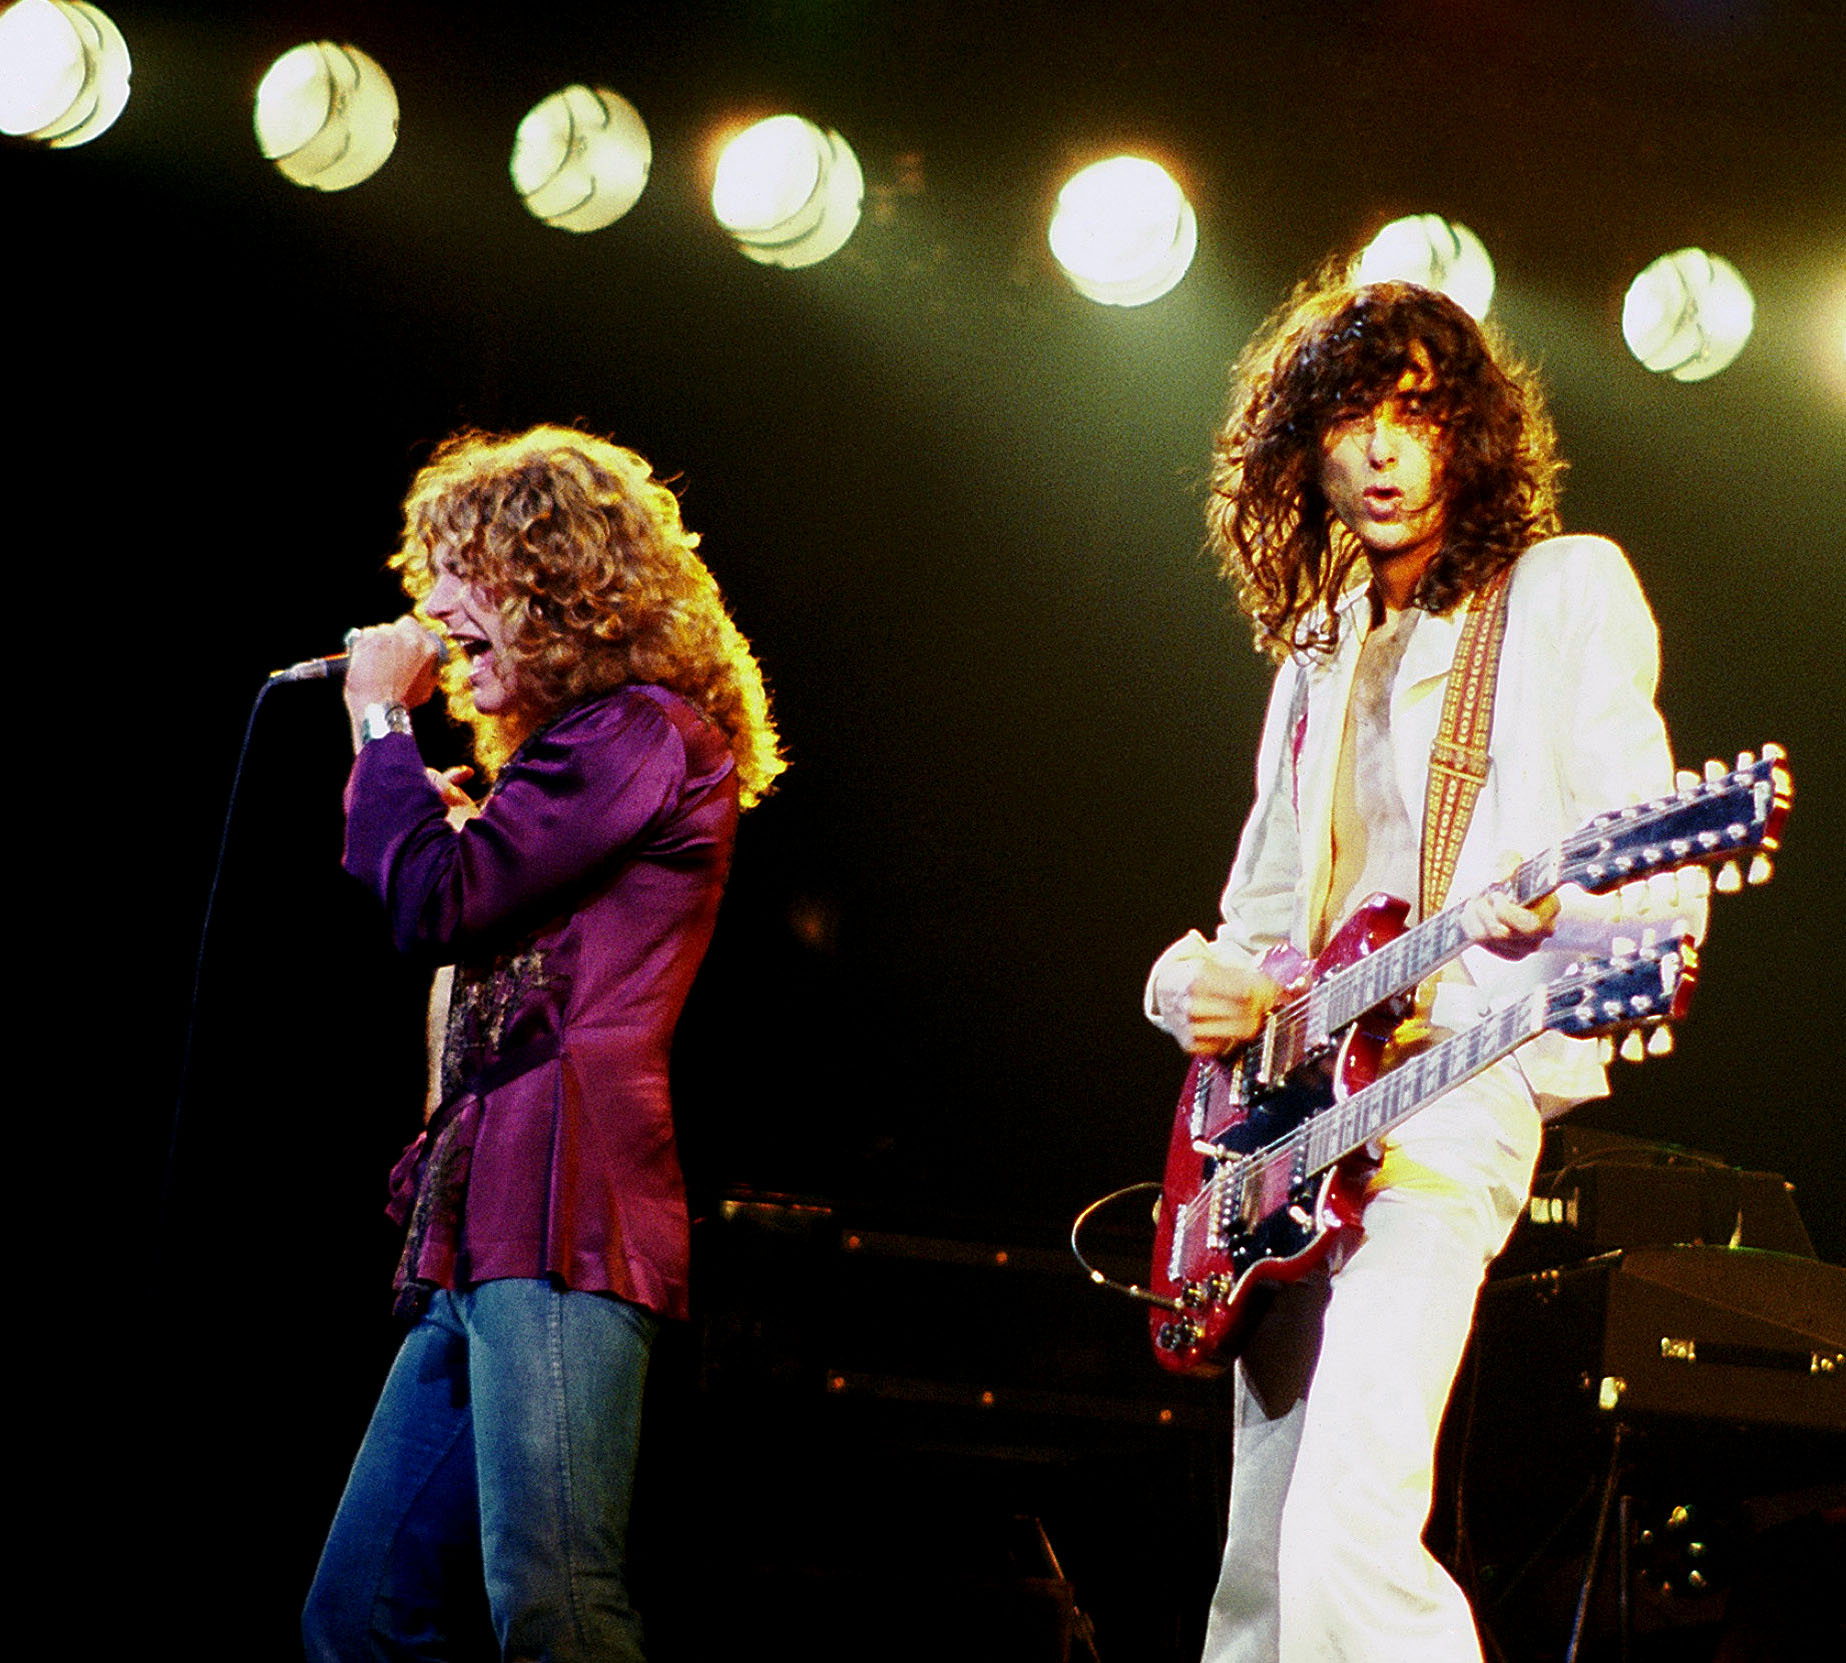 http://upload.wikimedia.org/wikipedia/commons/d/d3/Jimmy_Page_with_Robert_Plant_2_-_Led_Zeppelin_-_1977.jpg